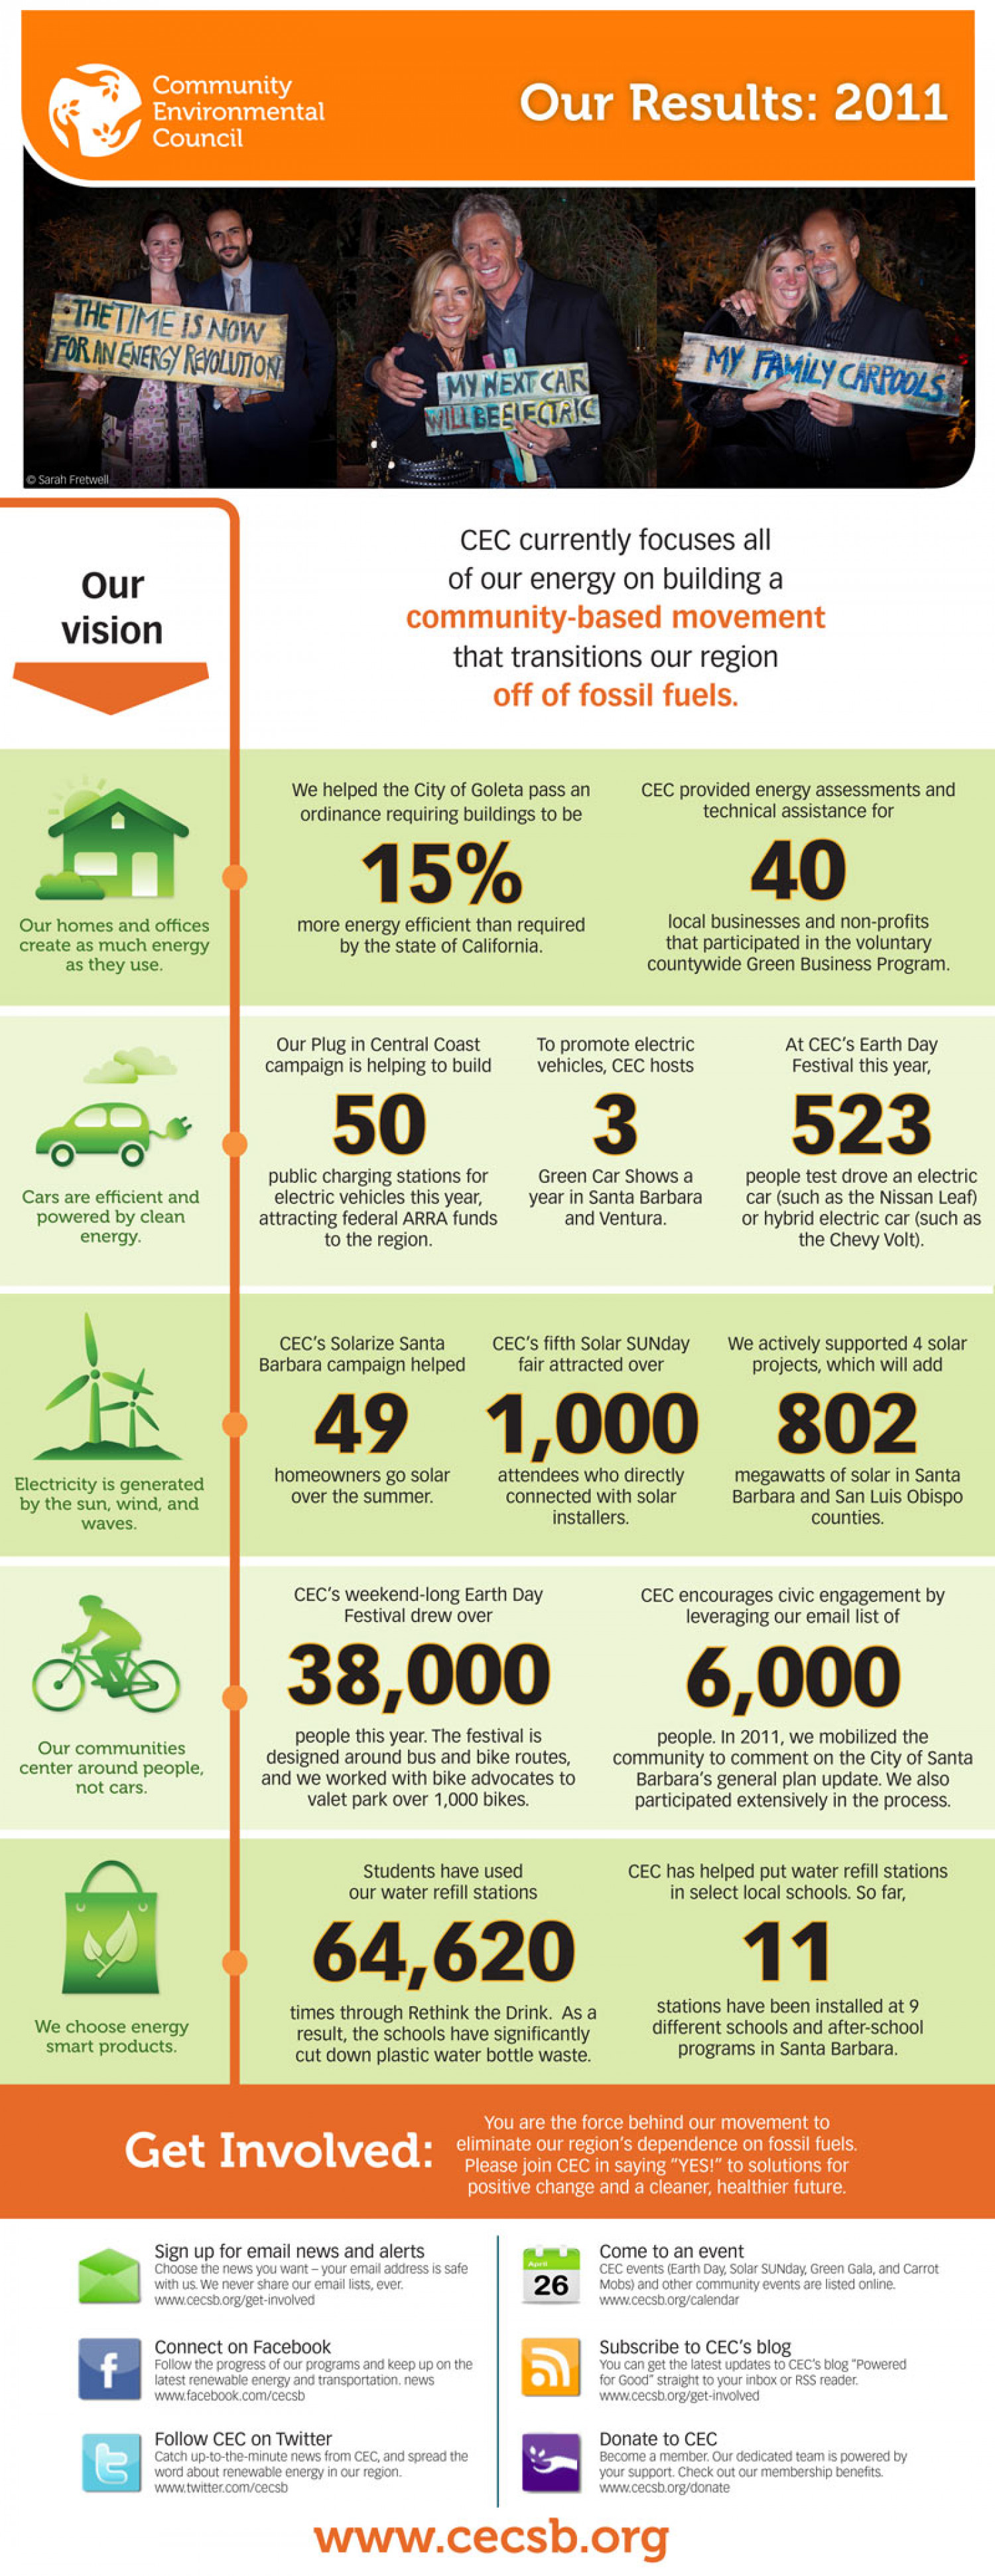 Community Environmental Council's Results 2011 Infographic